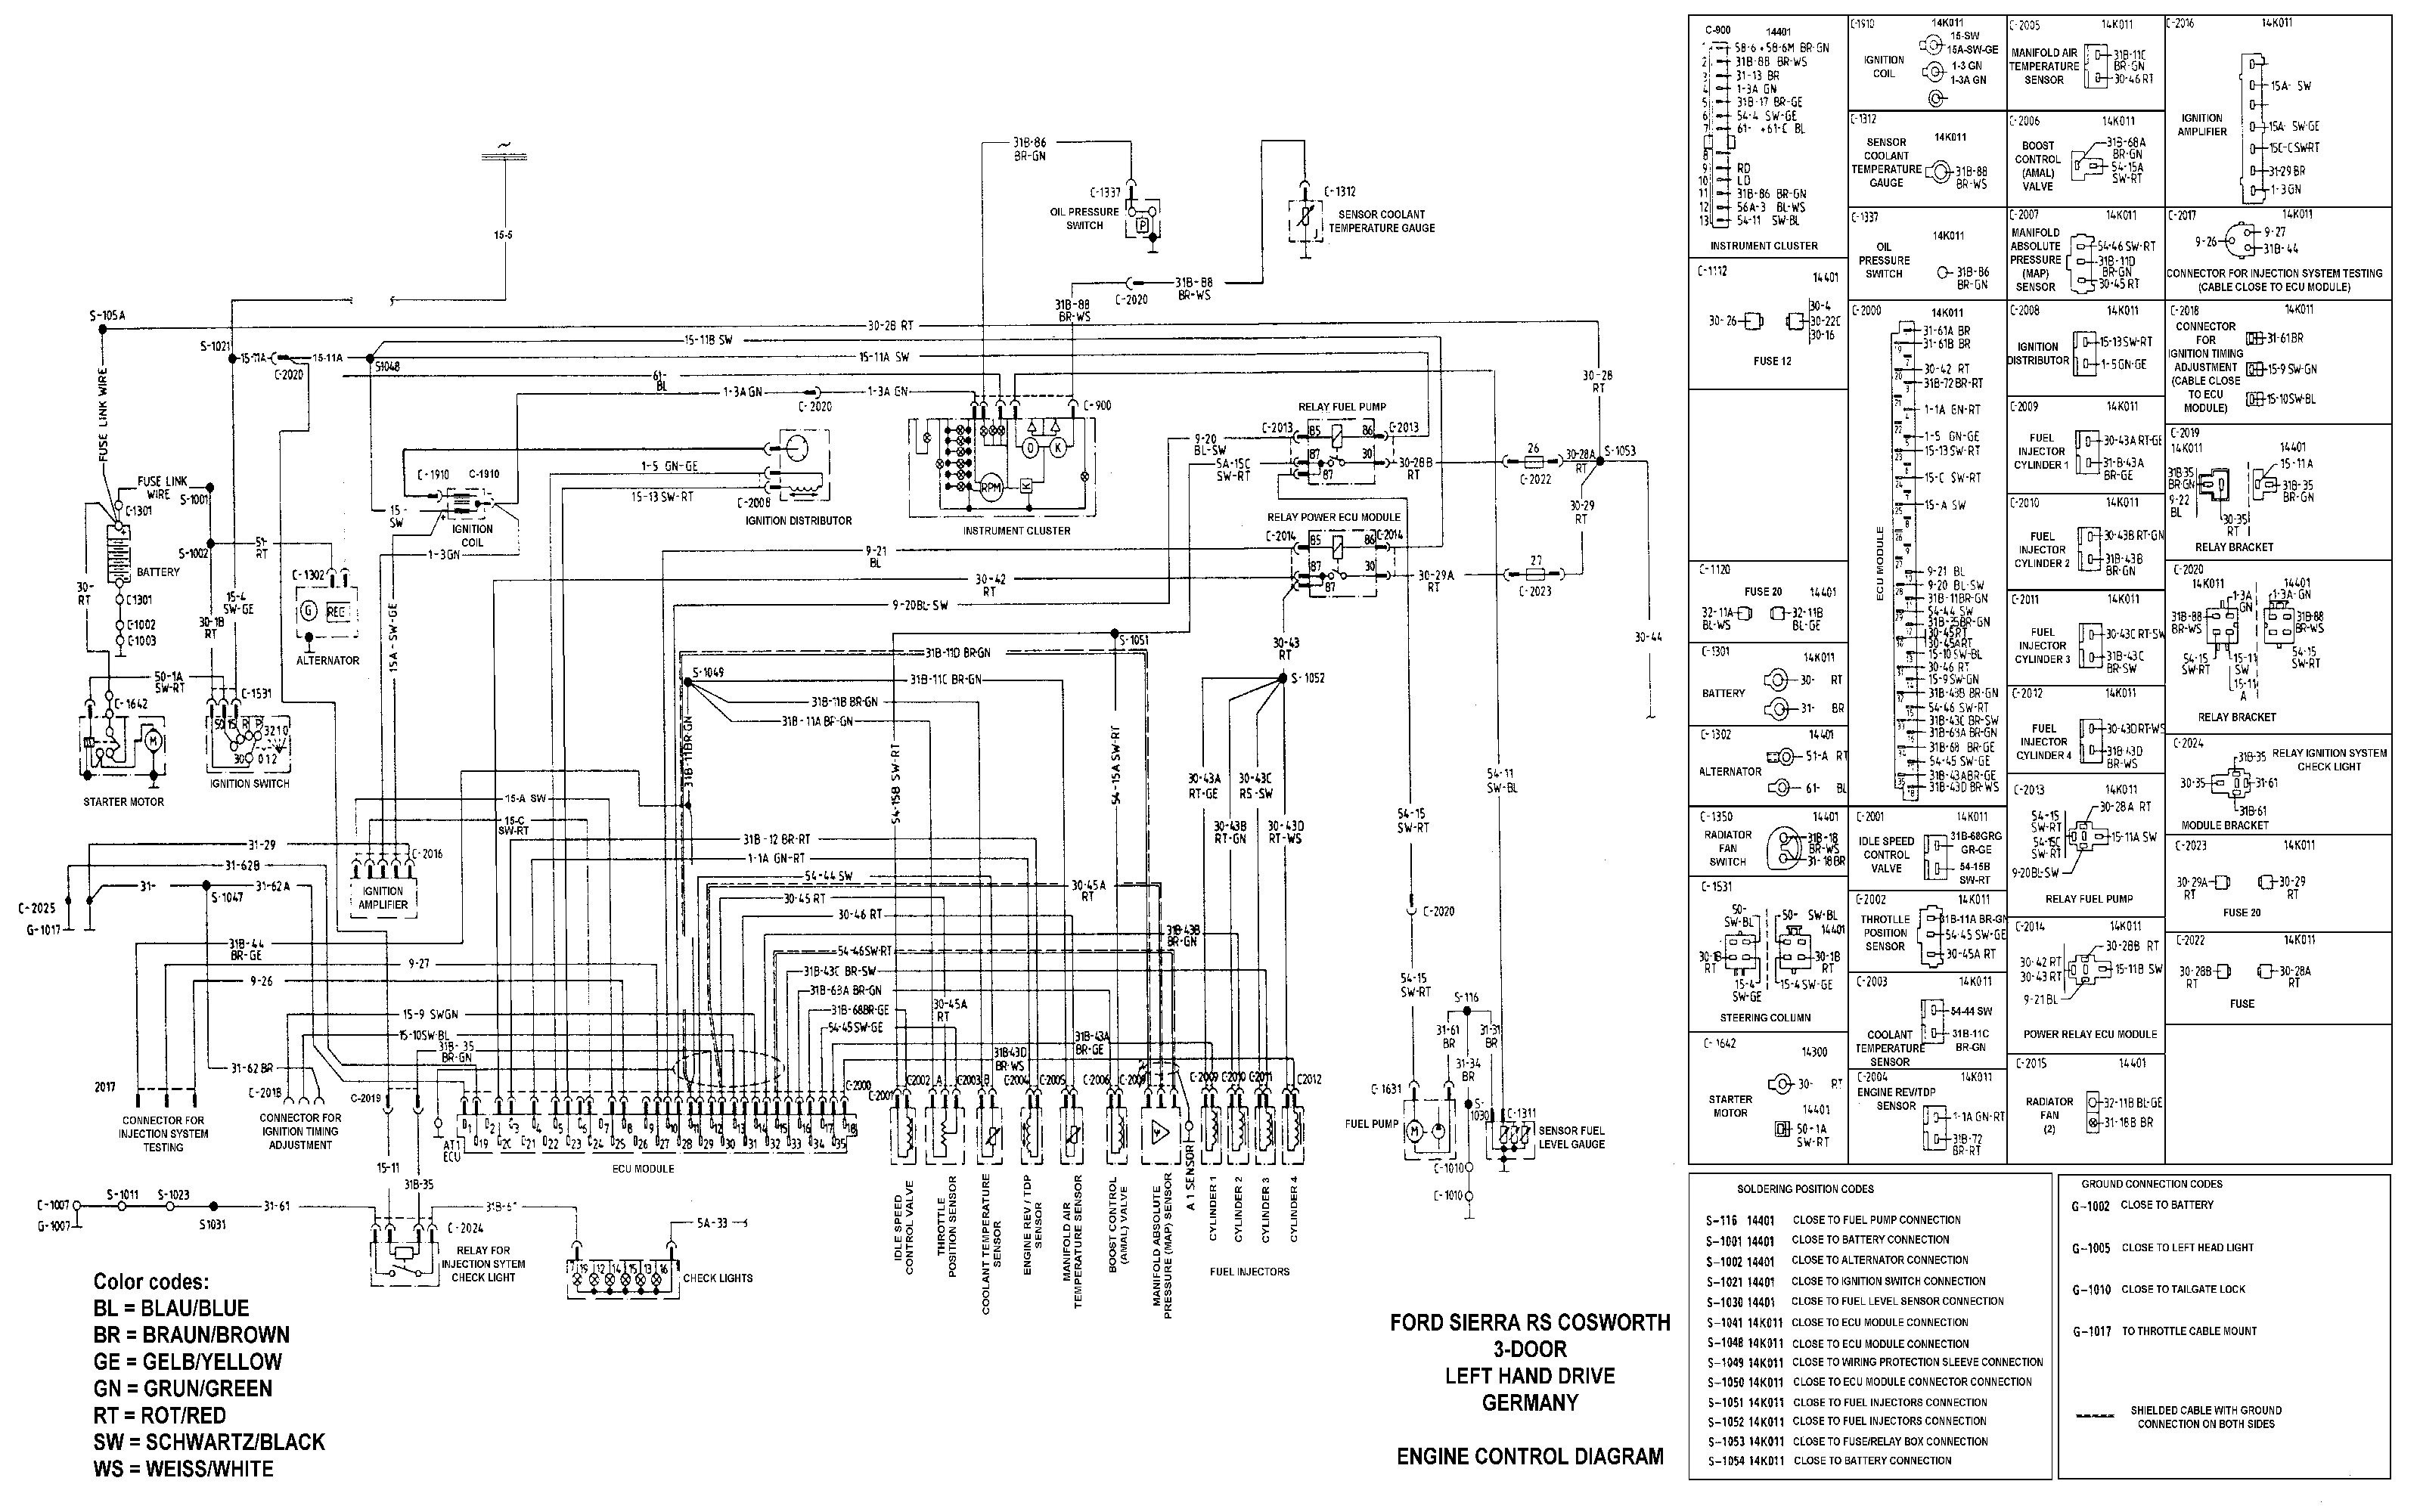 Diagram Wiring Diagram Ford Fiesta 2008 Espa Ol Full Version Hd Quality Espa Ol P7m7a7m7ddletour 35 Poderonevecchio It